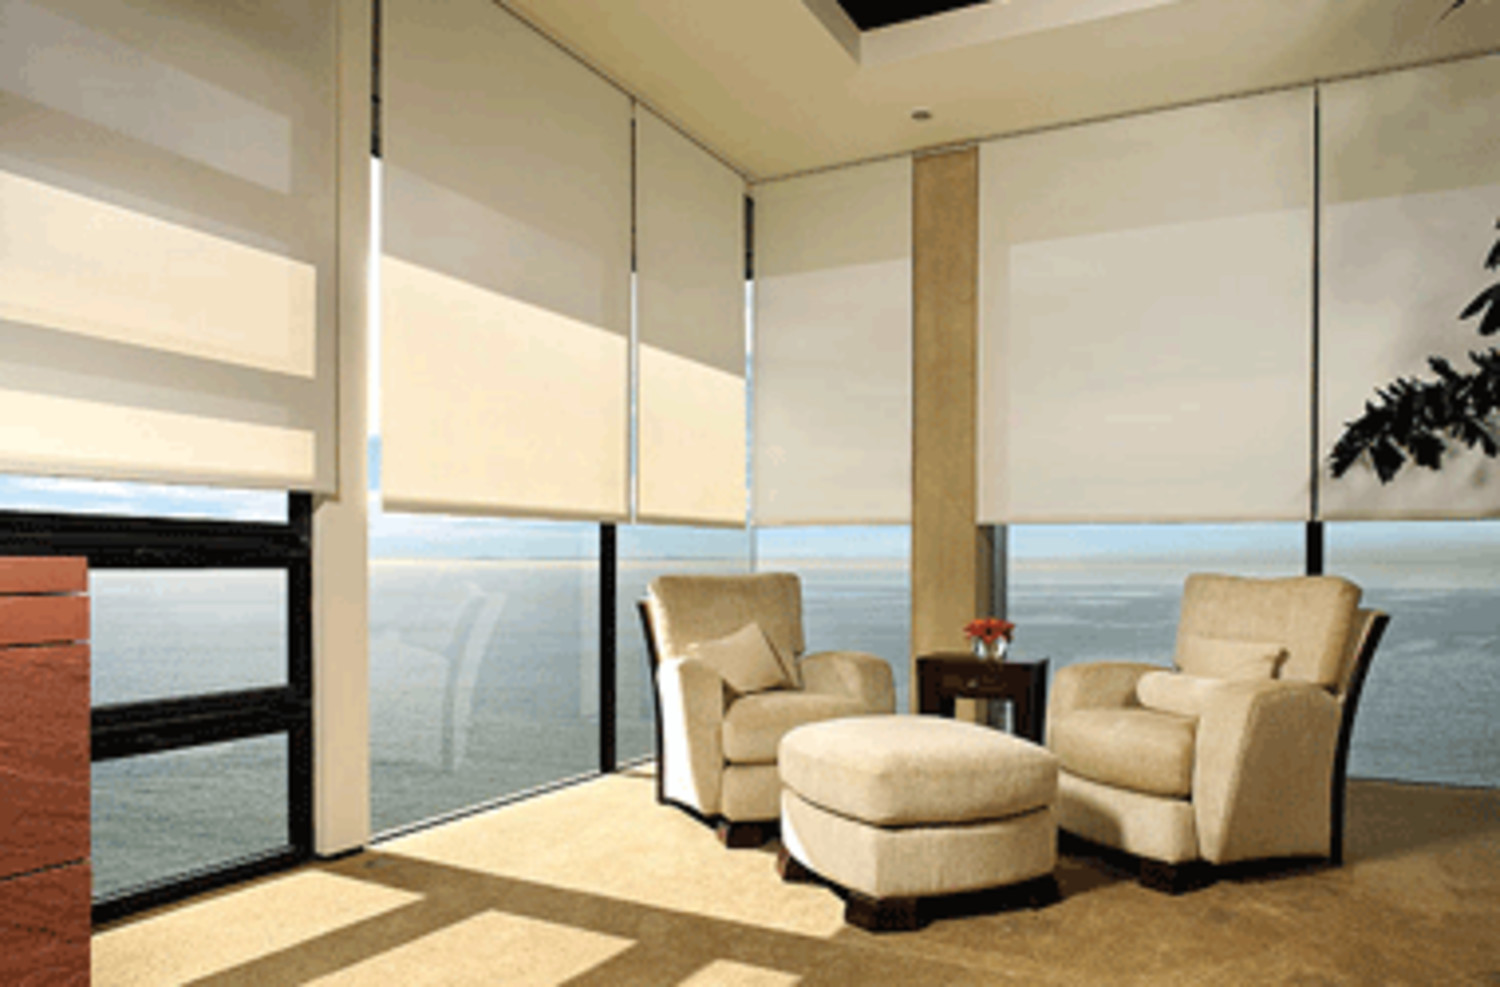 Motorized blind and shade systems digital21 smart home for Shades for large windows